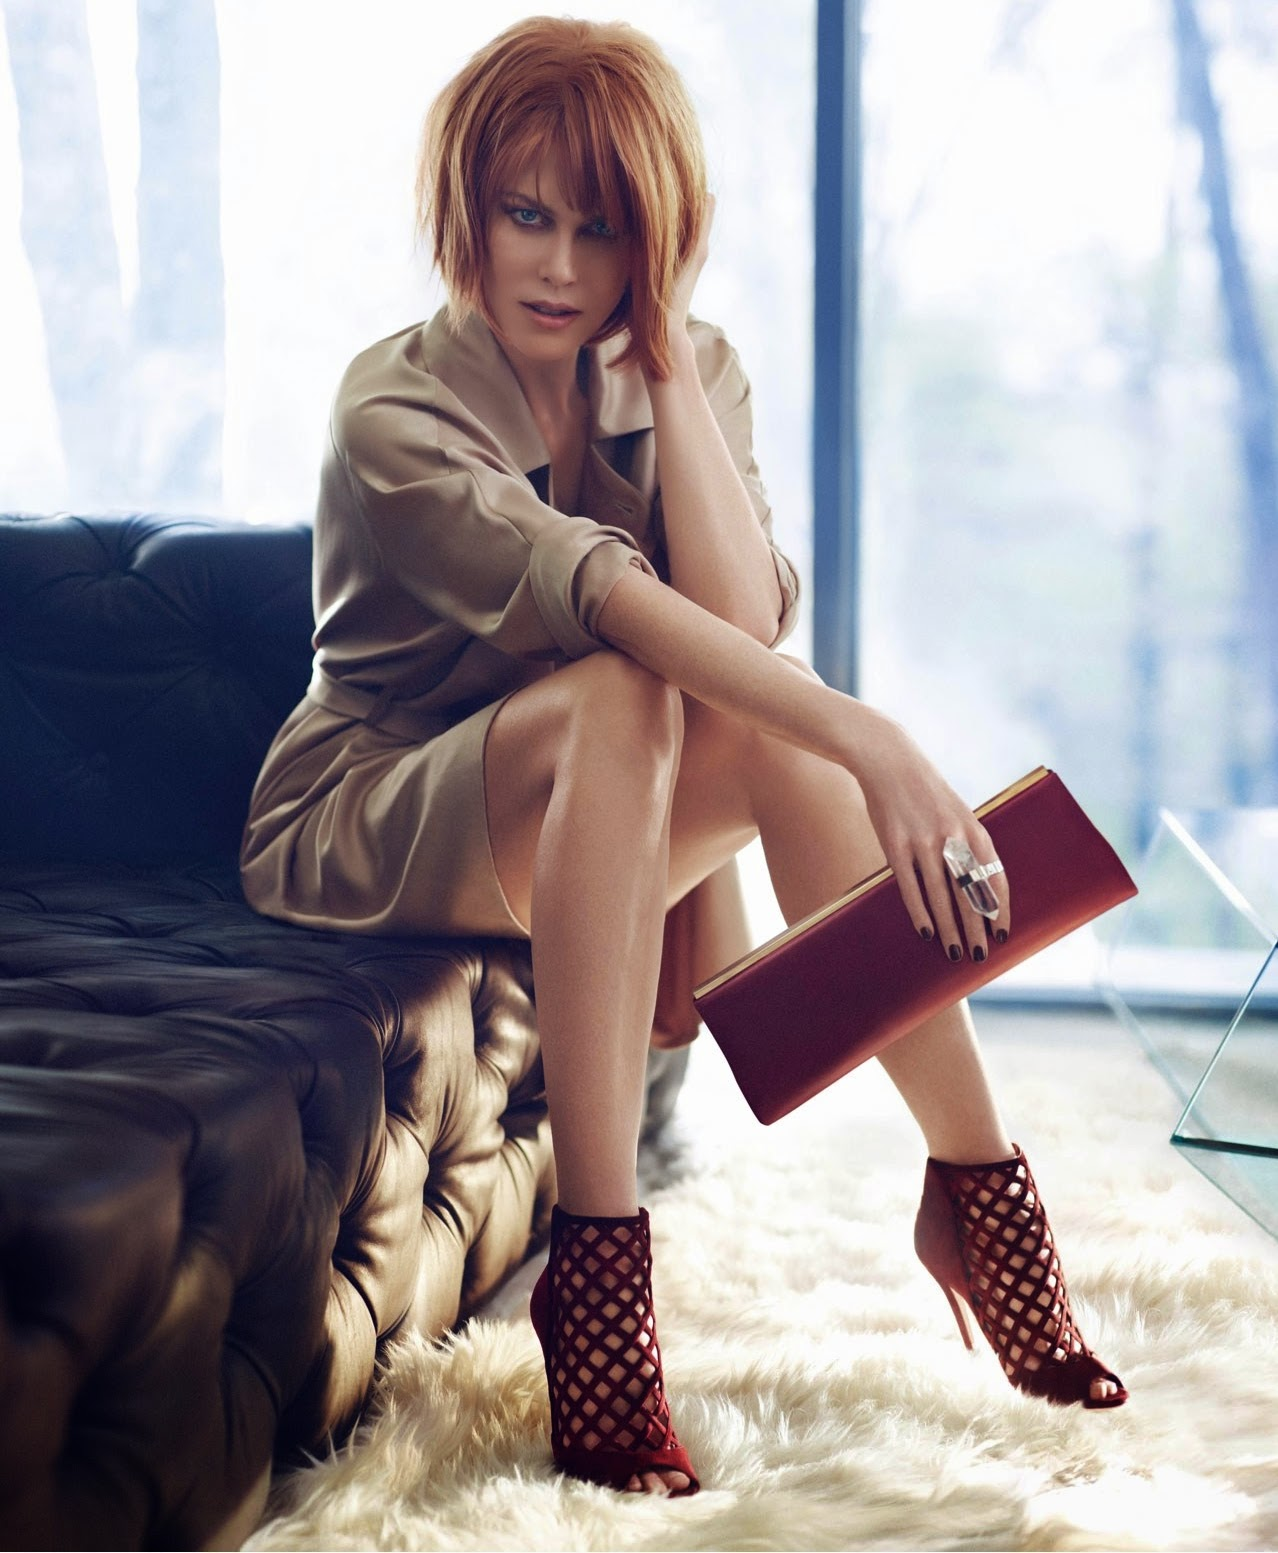 Nicole Kidman modelling some sexy shoes